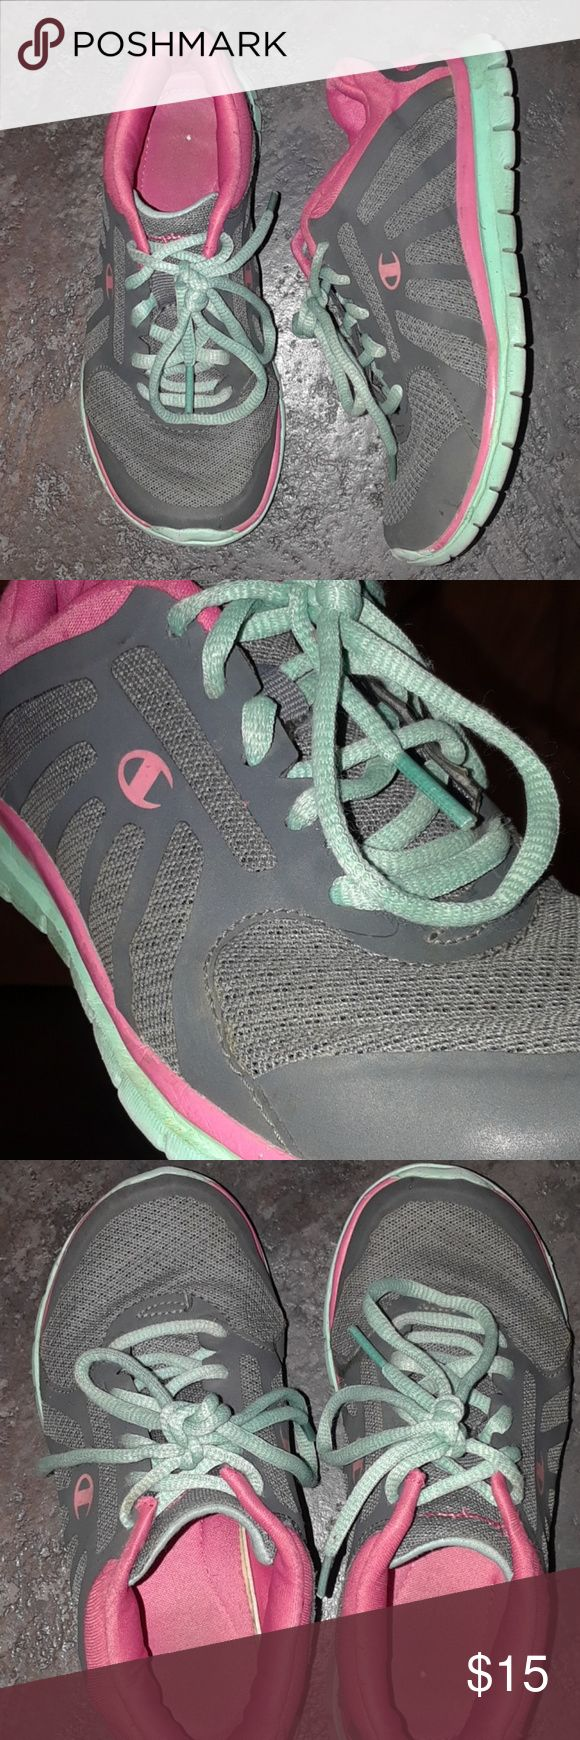 Little Girls 13 CHAMPION Sneakers Gray Pink Green Smoke Free and clean home!  💰Save on shipping and BUNDLE from my closet to get the most out of your buck!   Little Girls size 13 CHAMPION Sneakers.  Gray, pink and sea foam green. Gently used. No major flaws. See pics for normal wear.  Laces are in tact.  Super light weight and comfortable.    Check out my closet for other great deals for Men, women,  boys, girls and infants. Shirts pants jeans boots shoes hoodie hat new extra  large medium…